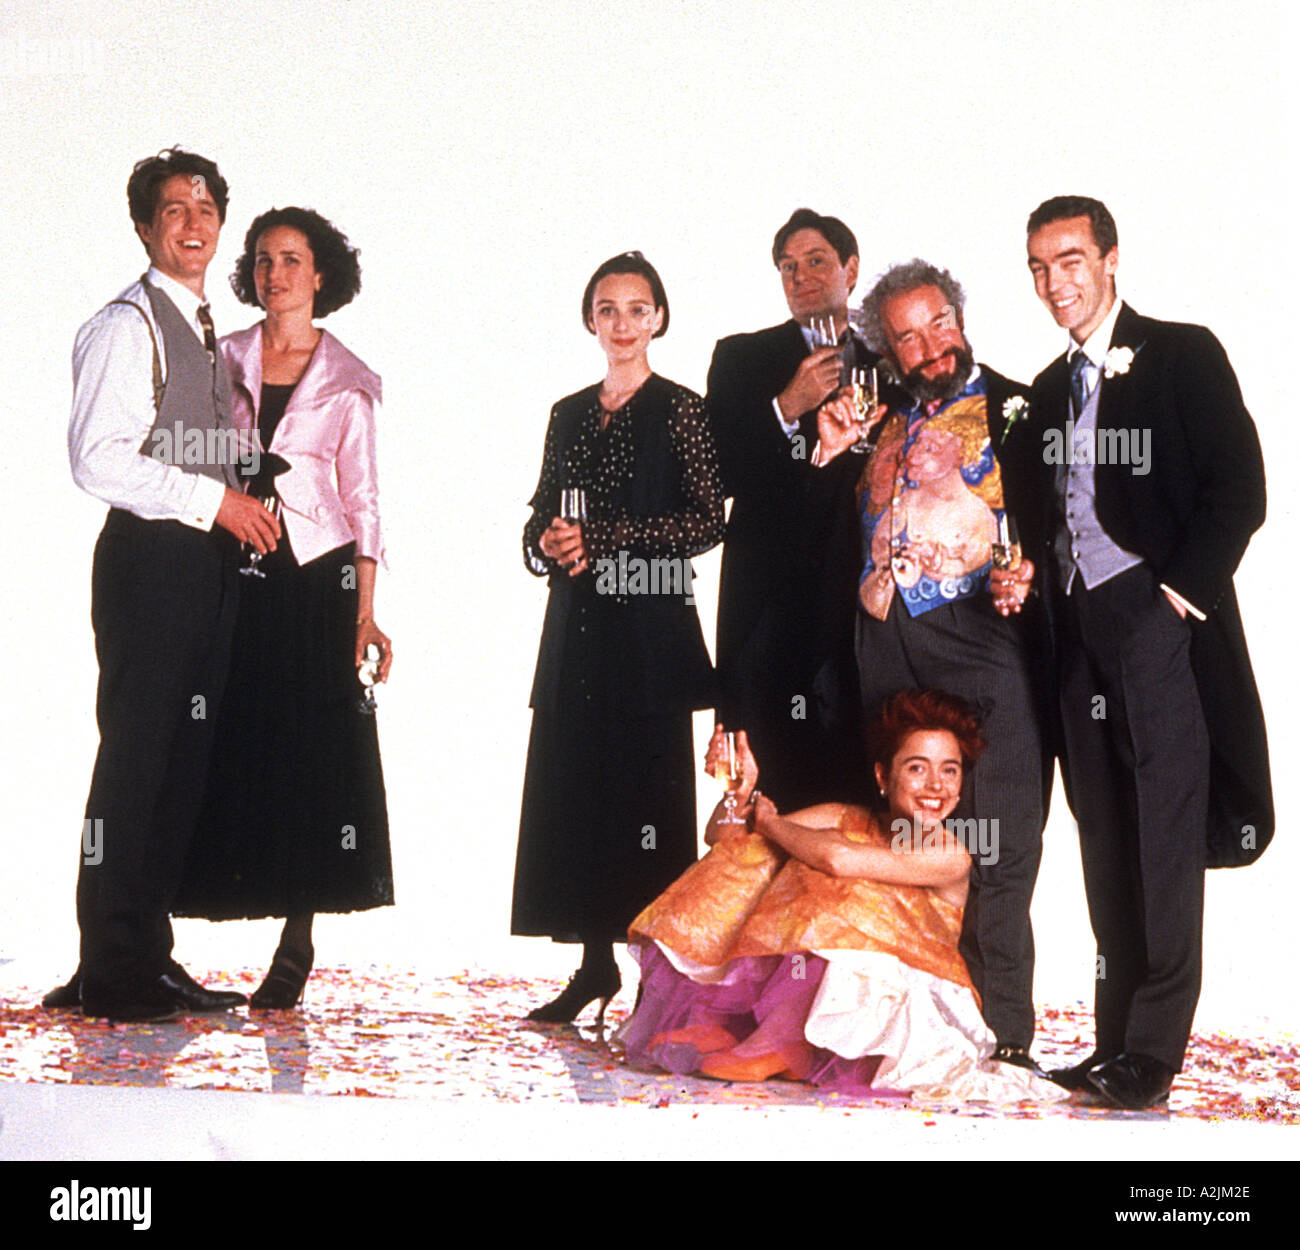 Four Weddings And A Funeral Movie Wiki: FOUR WEDDINGS AND A FUNERAL 1994 Film Starring Hugh Grant